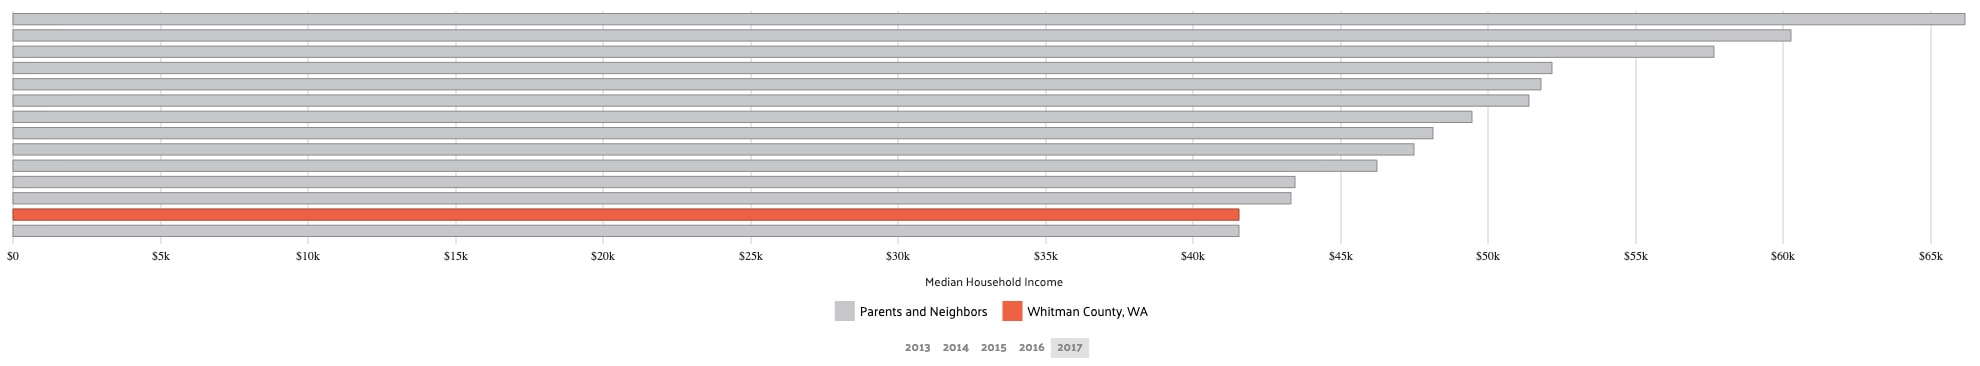 Median Household Income_whitman